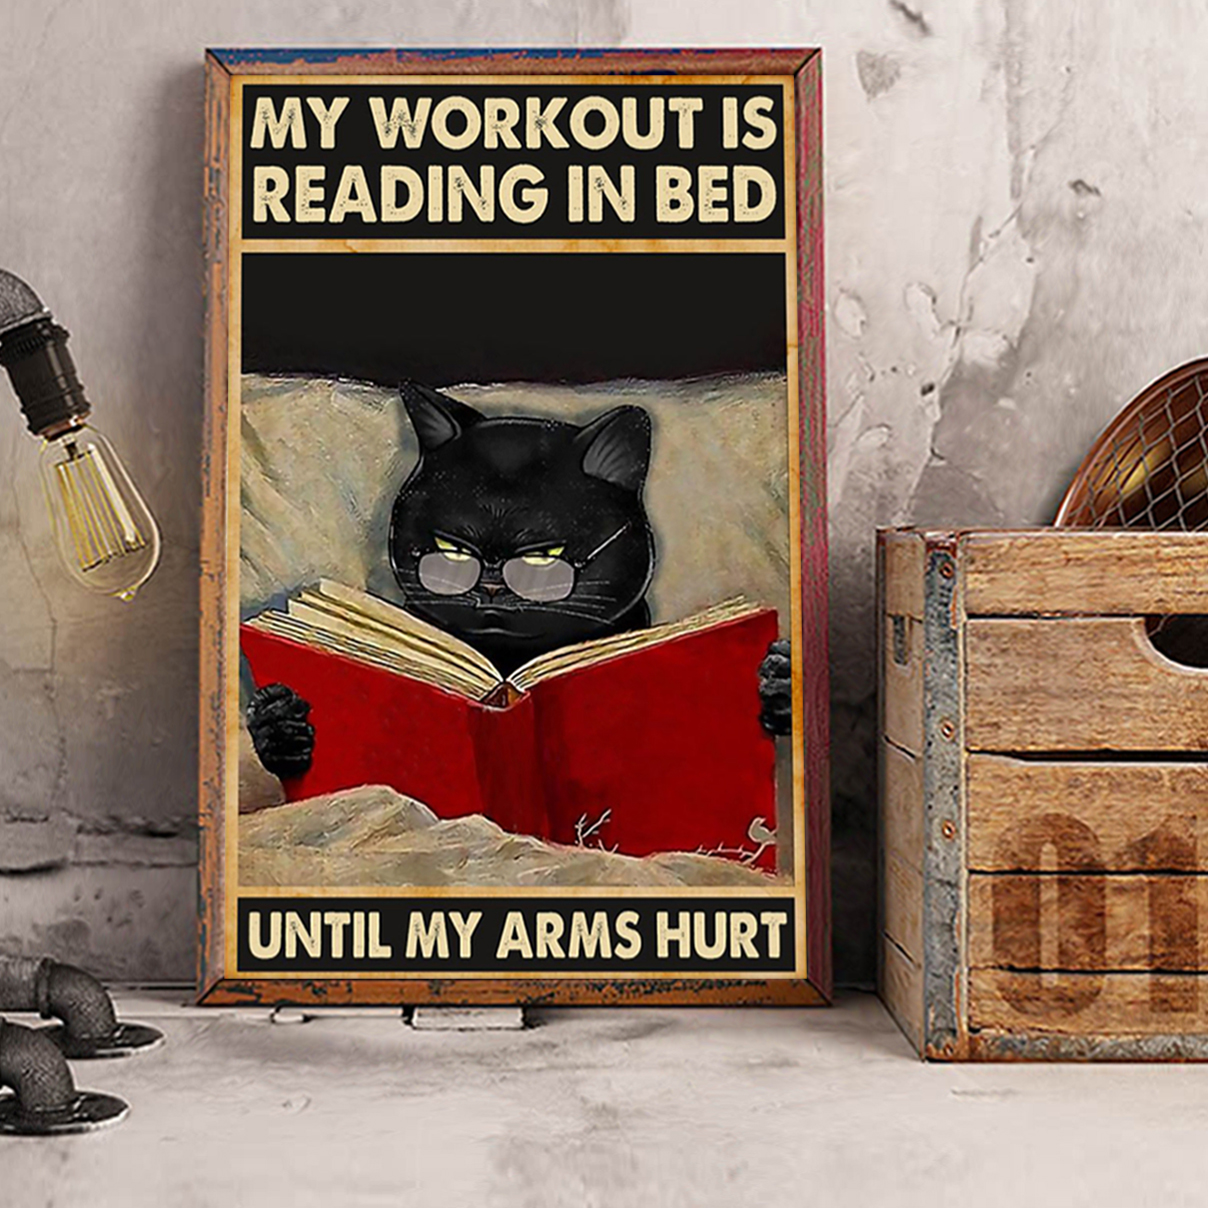 My workout is reading in bed until my arms hurt poster A1